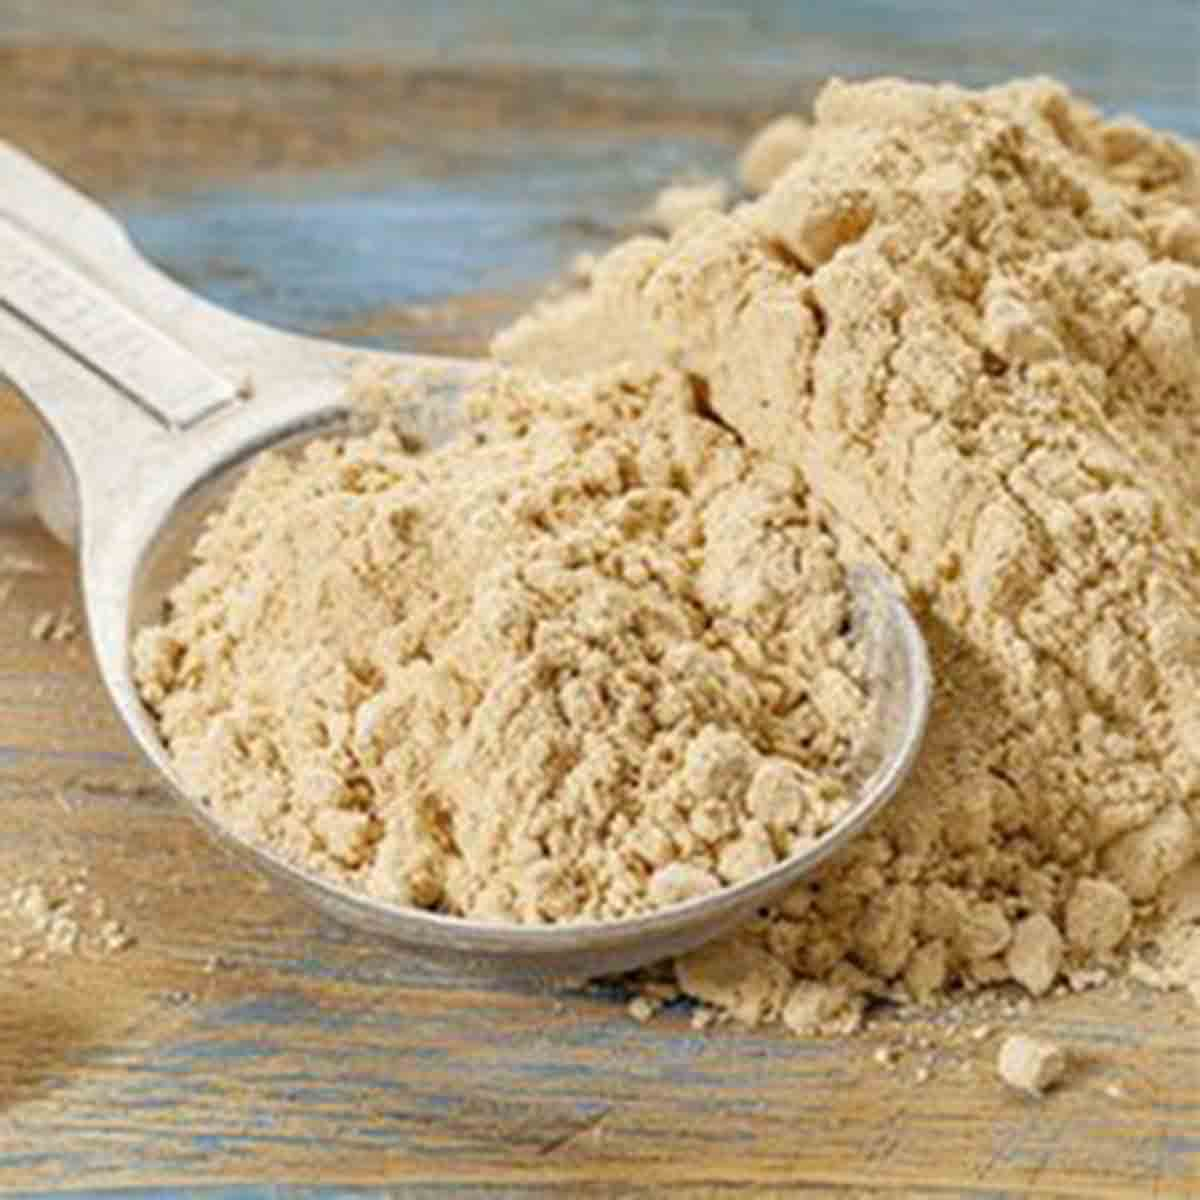 How To Use Glucomannan Powder